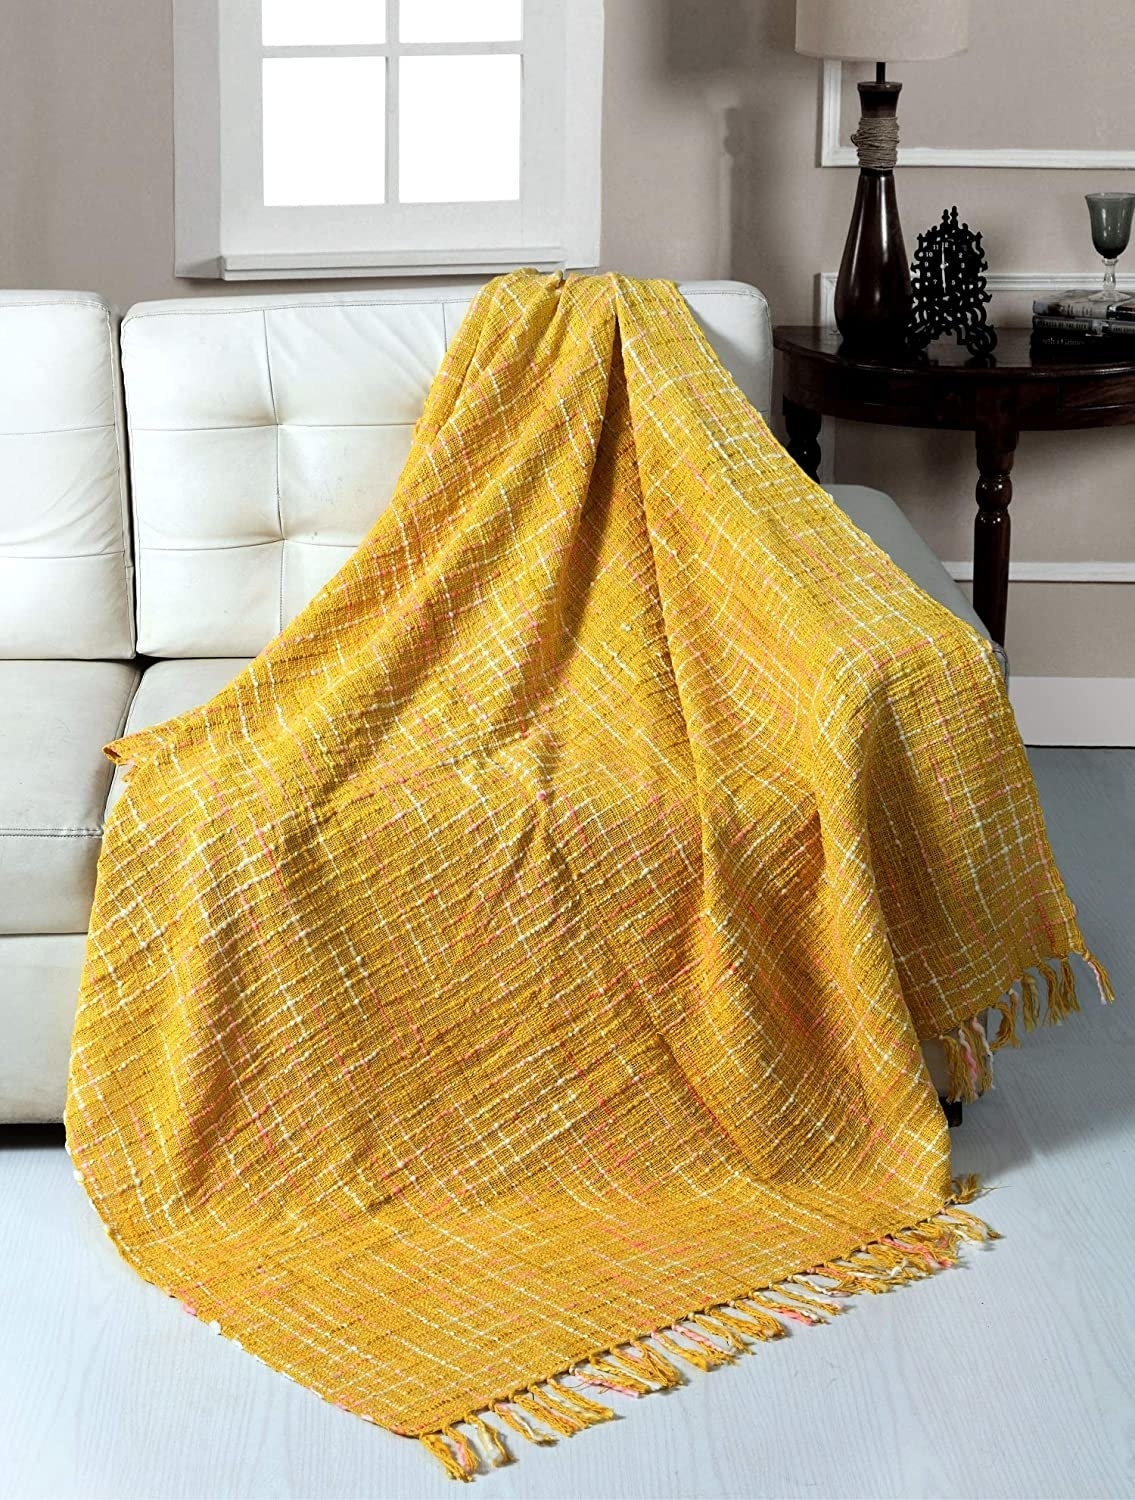 A bright yellow throw blanket draped on an off-white sofa.